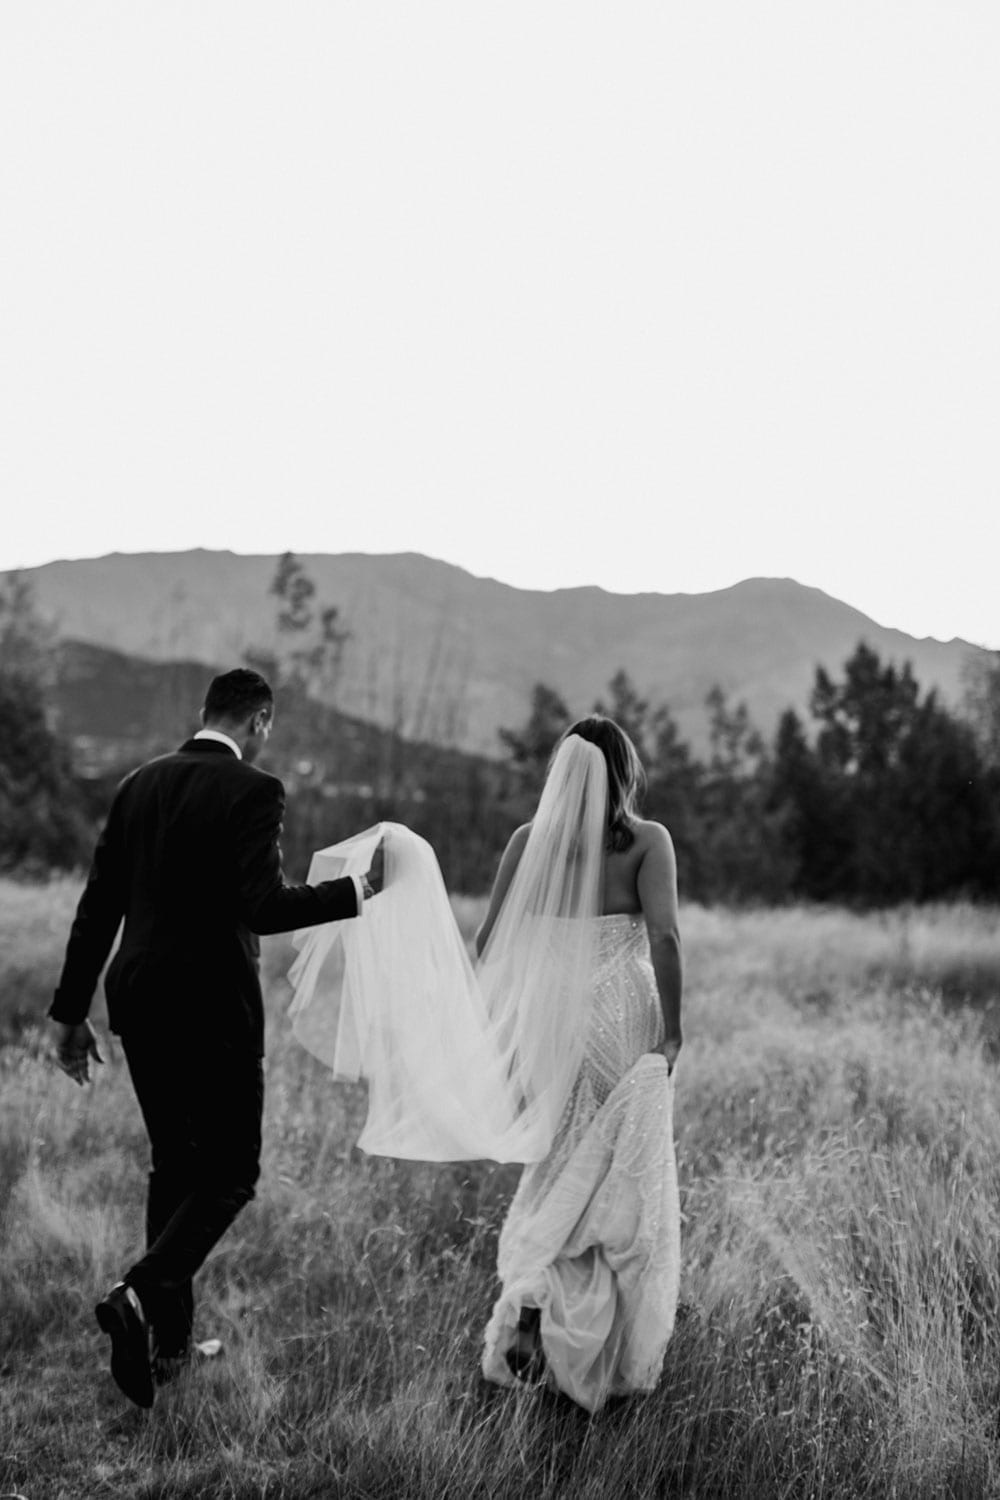 Vinka Design Features Real Weddings - bride in custom made gown, a combination of our Indi wedding dress with added beading appliqued and sewn by hand, over the top of a nude semi sheer base. Walking with groom in woods in black and white